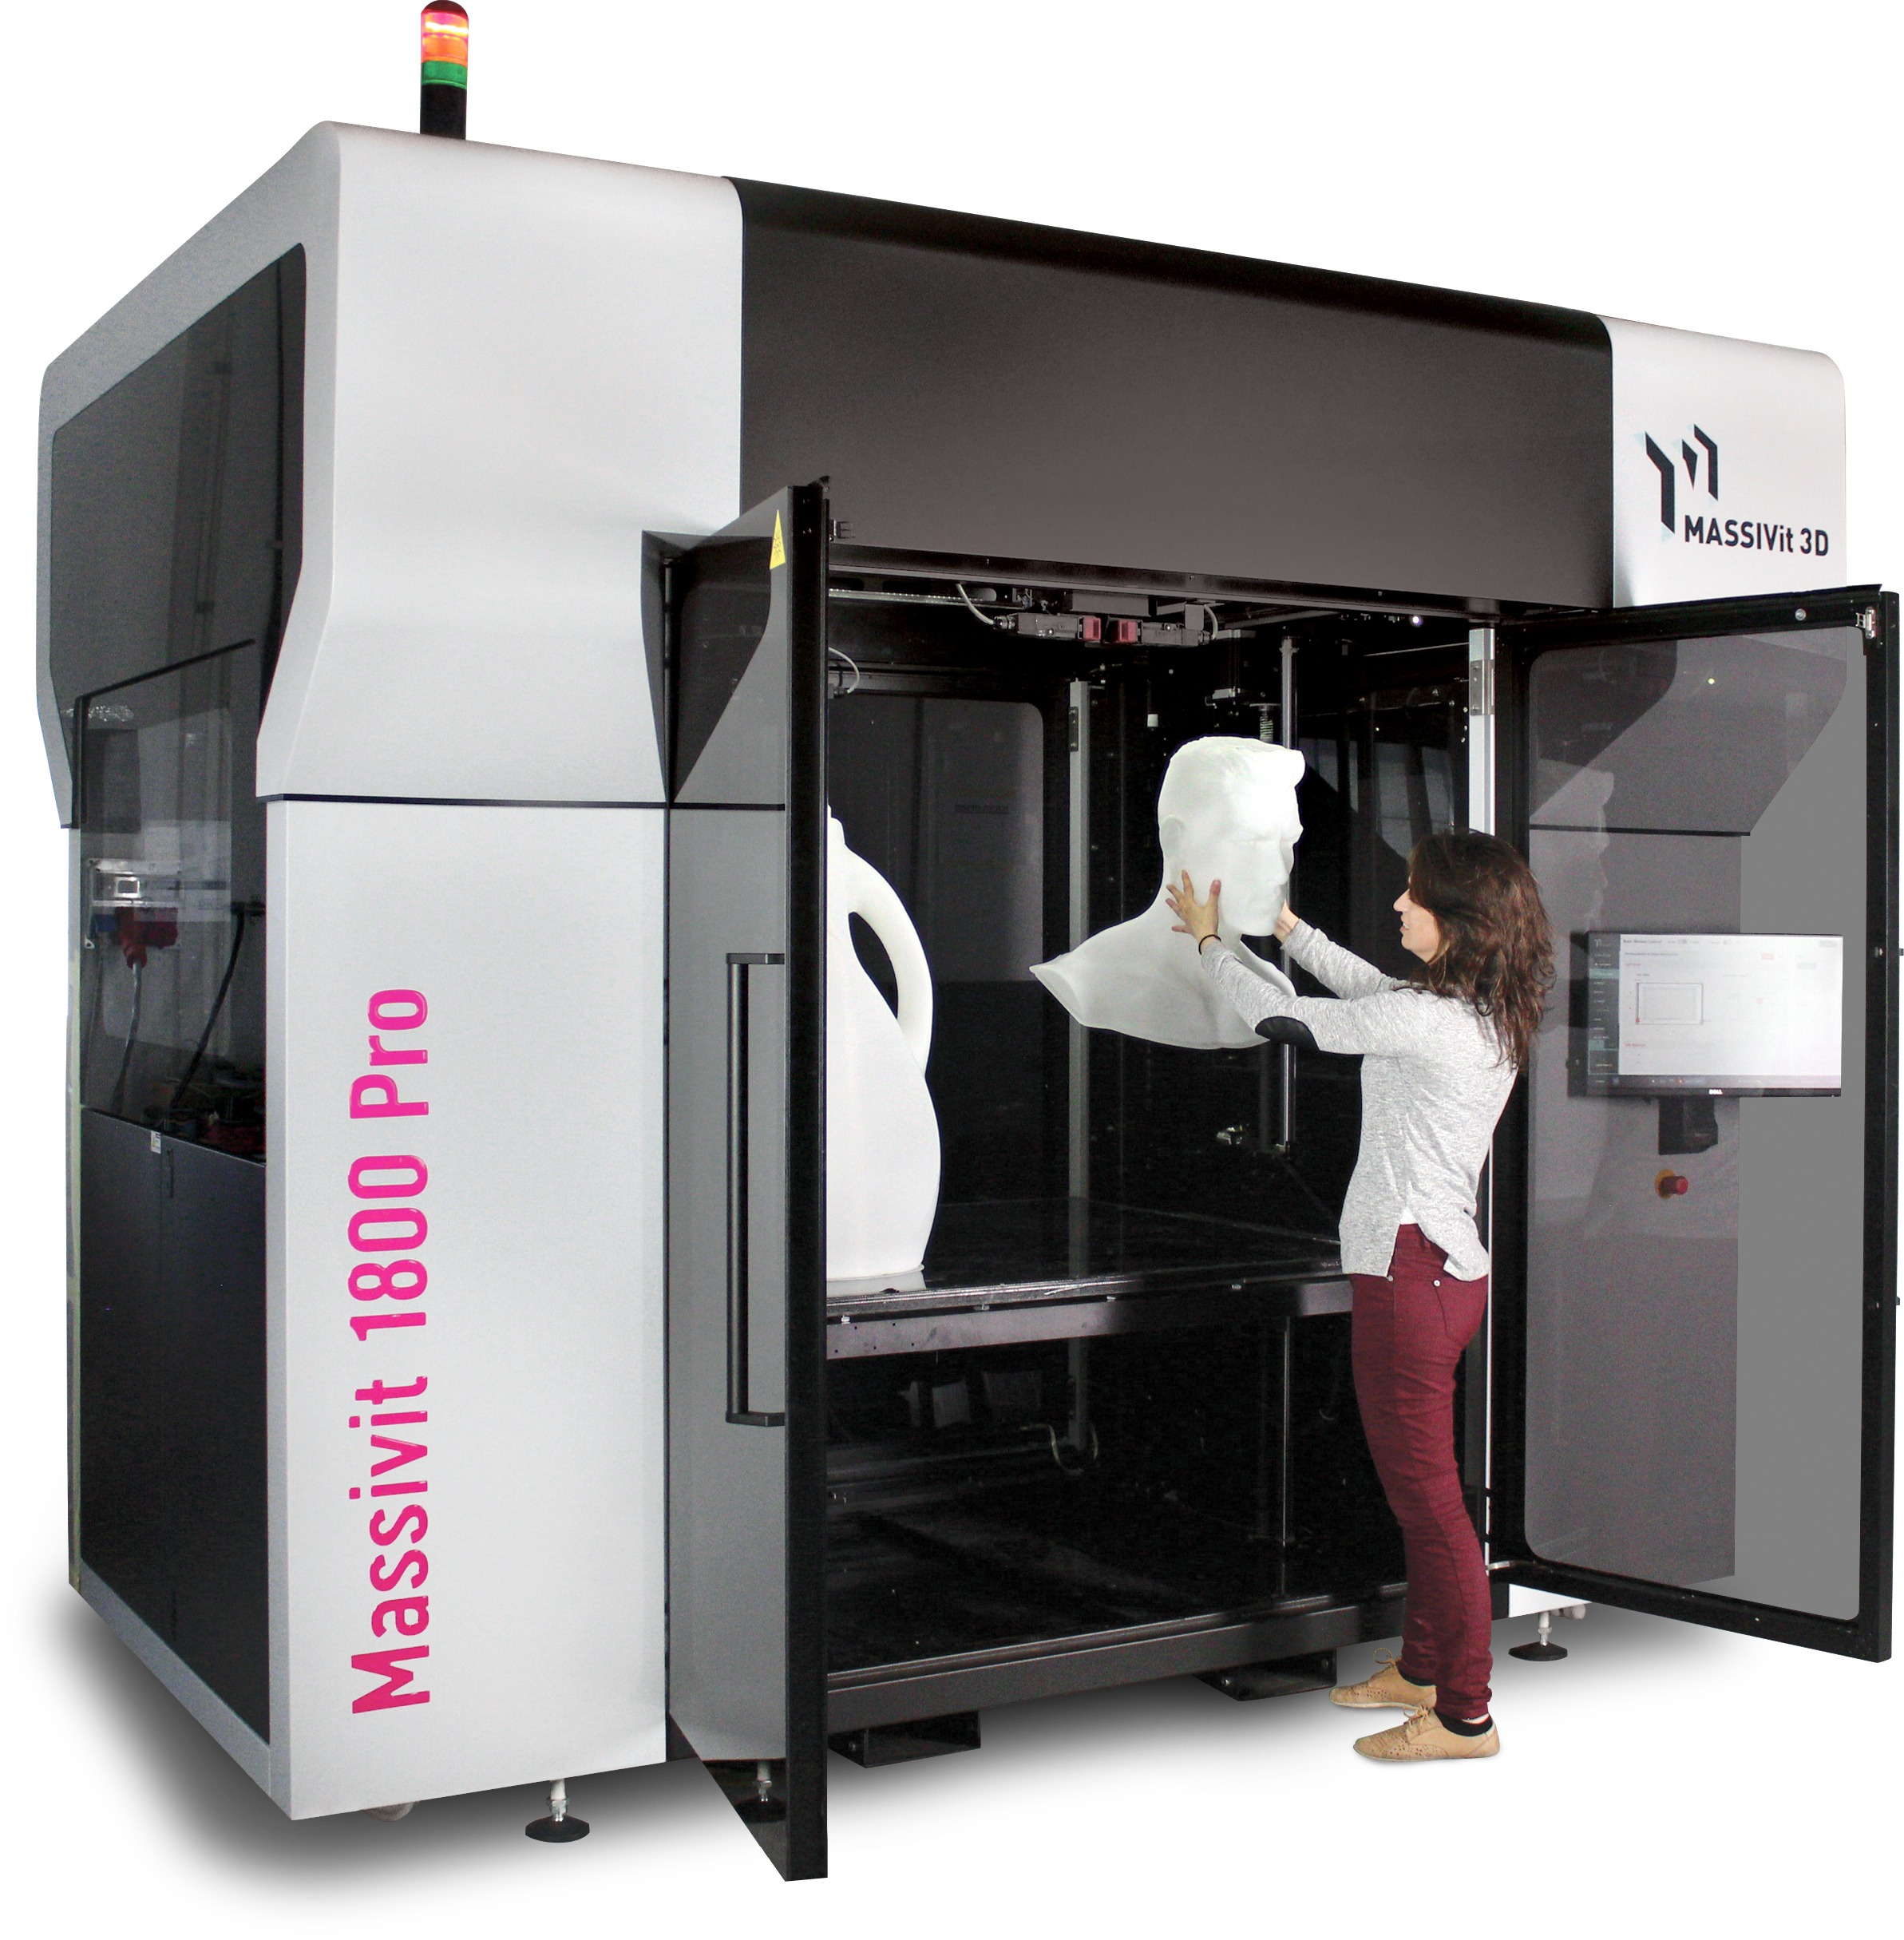 Massivit 1800 Pro Large Format 3D Printer